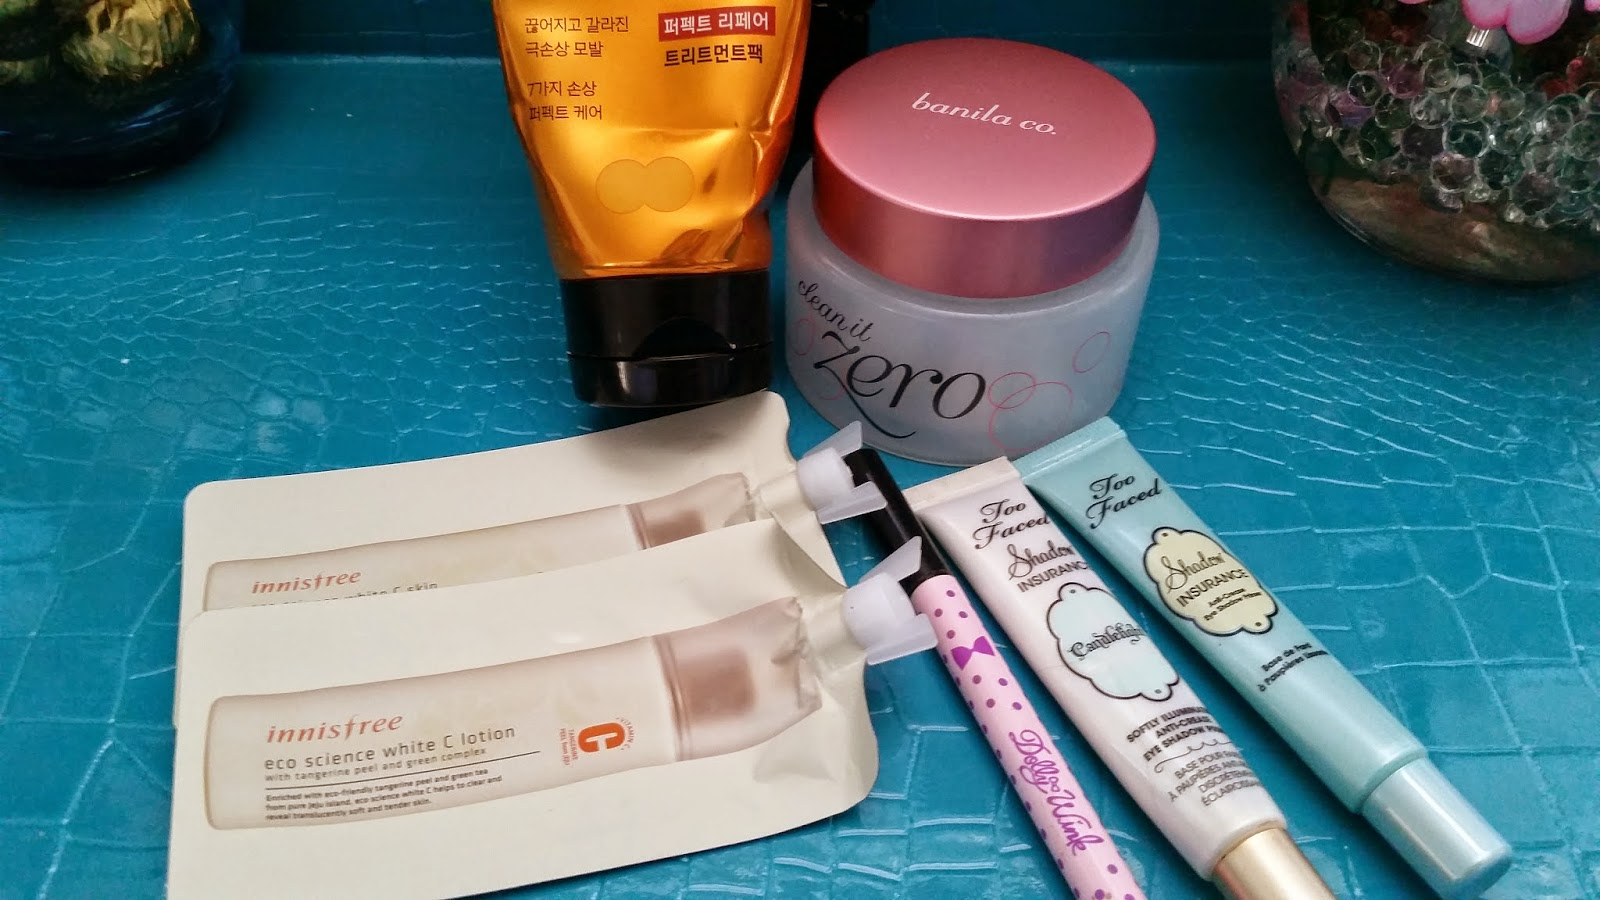 February and March Empties!